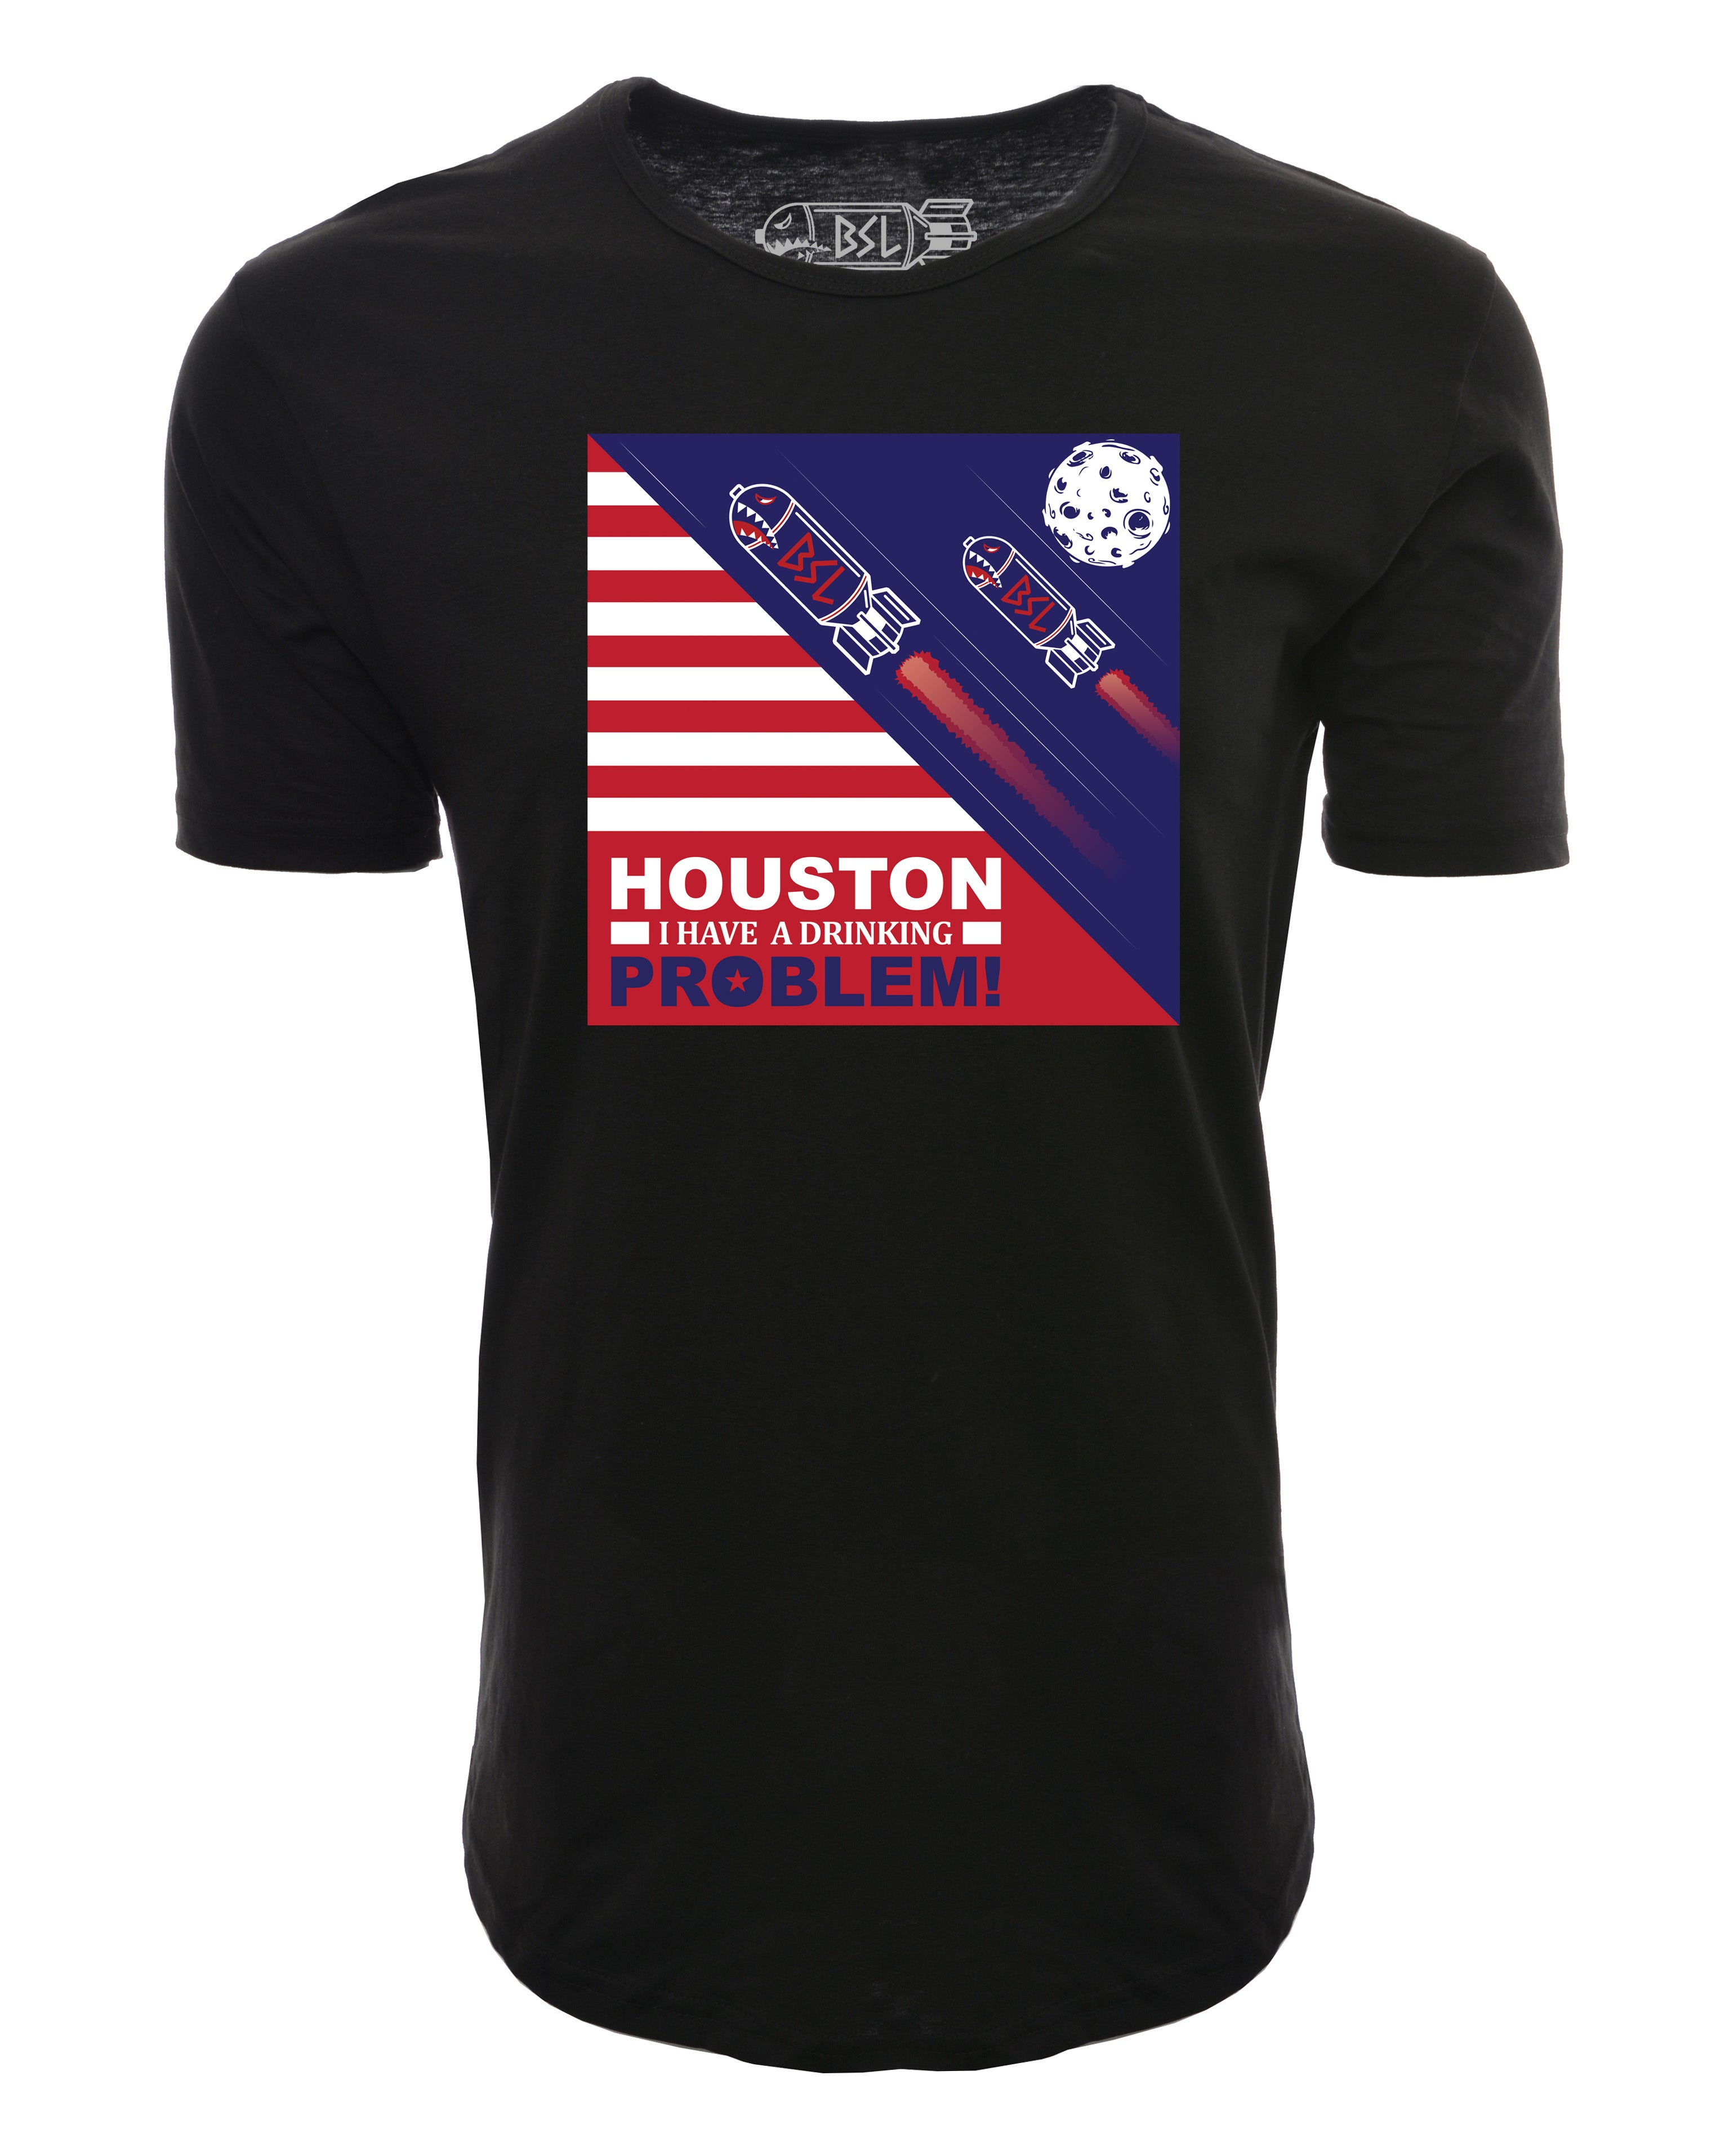 BSL Houston I have a Drinking Problem Shirt - Black